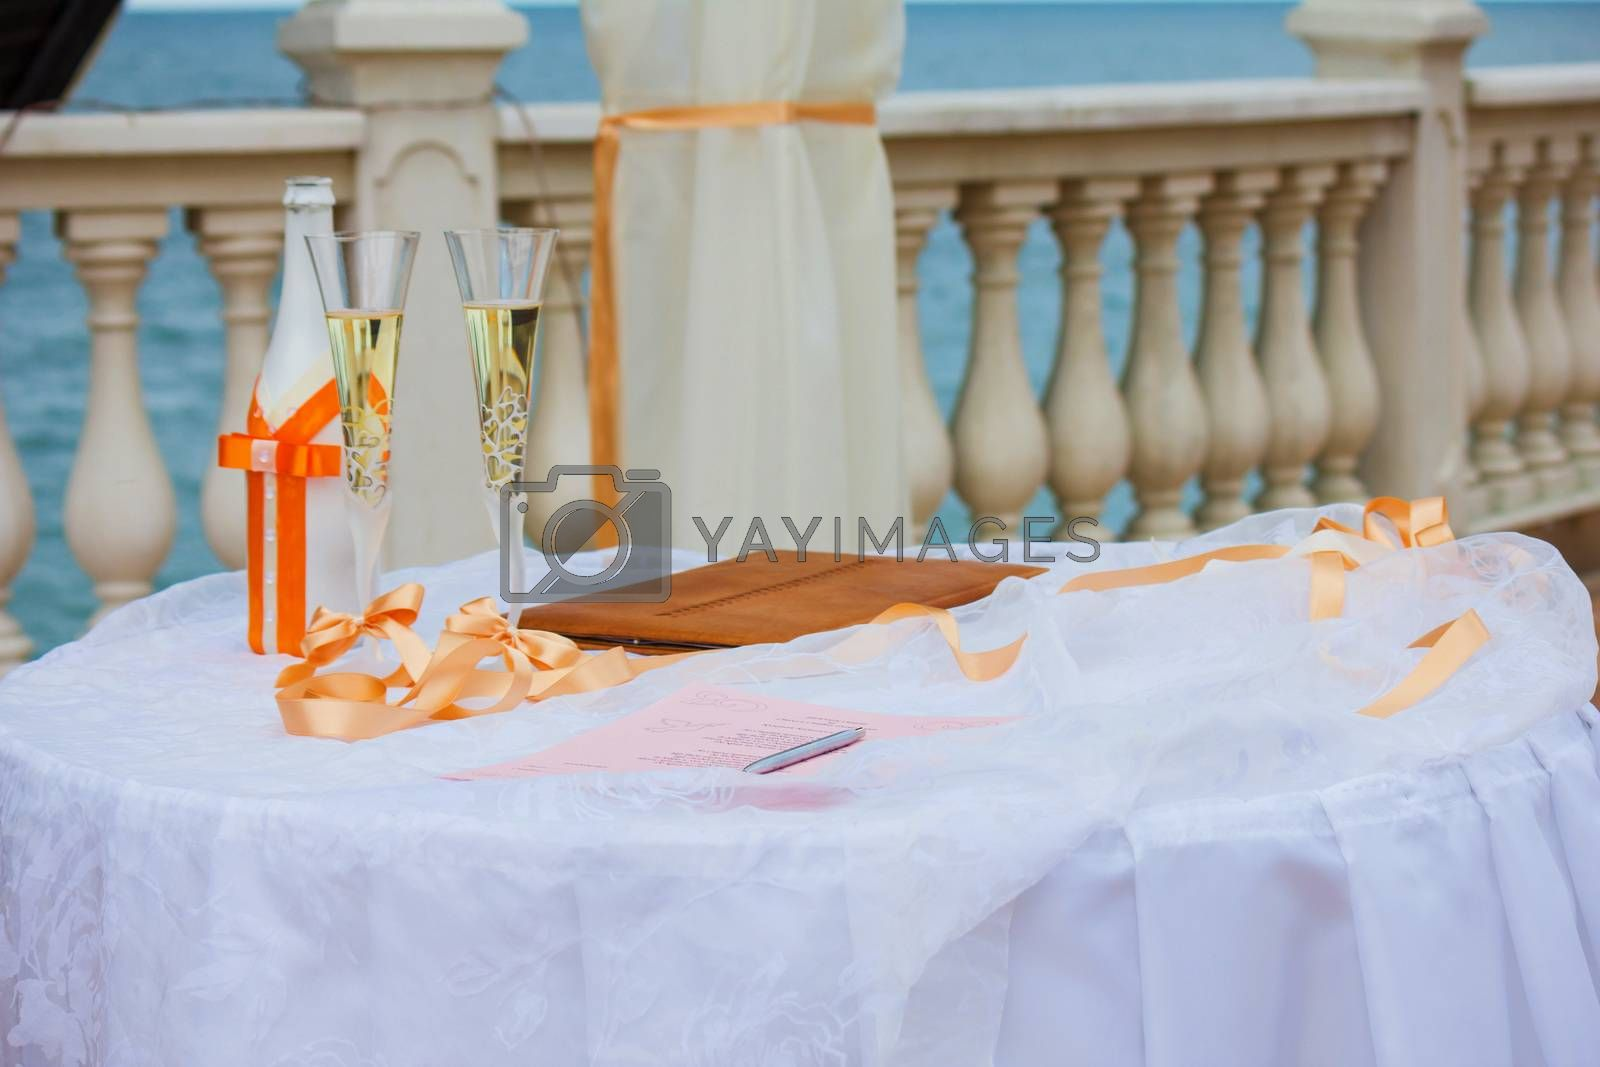 Wedding Champagne glasses at outdoor wedding. Champagne glasses for a wedding.